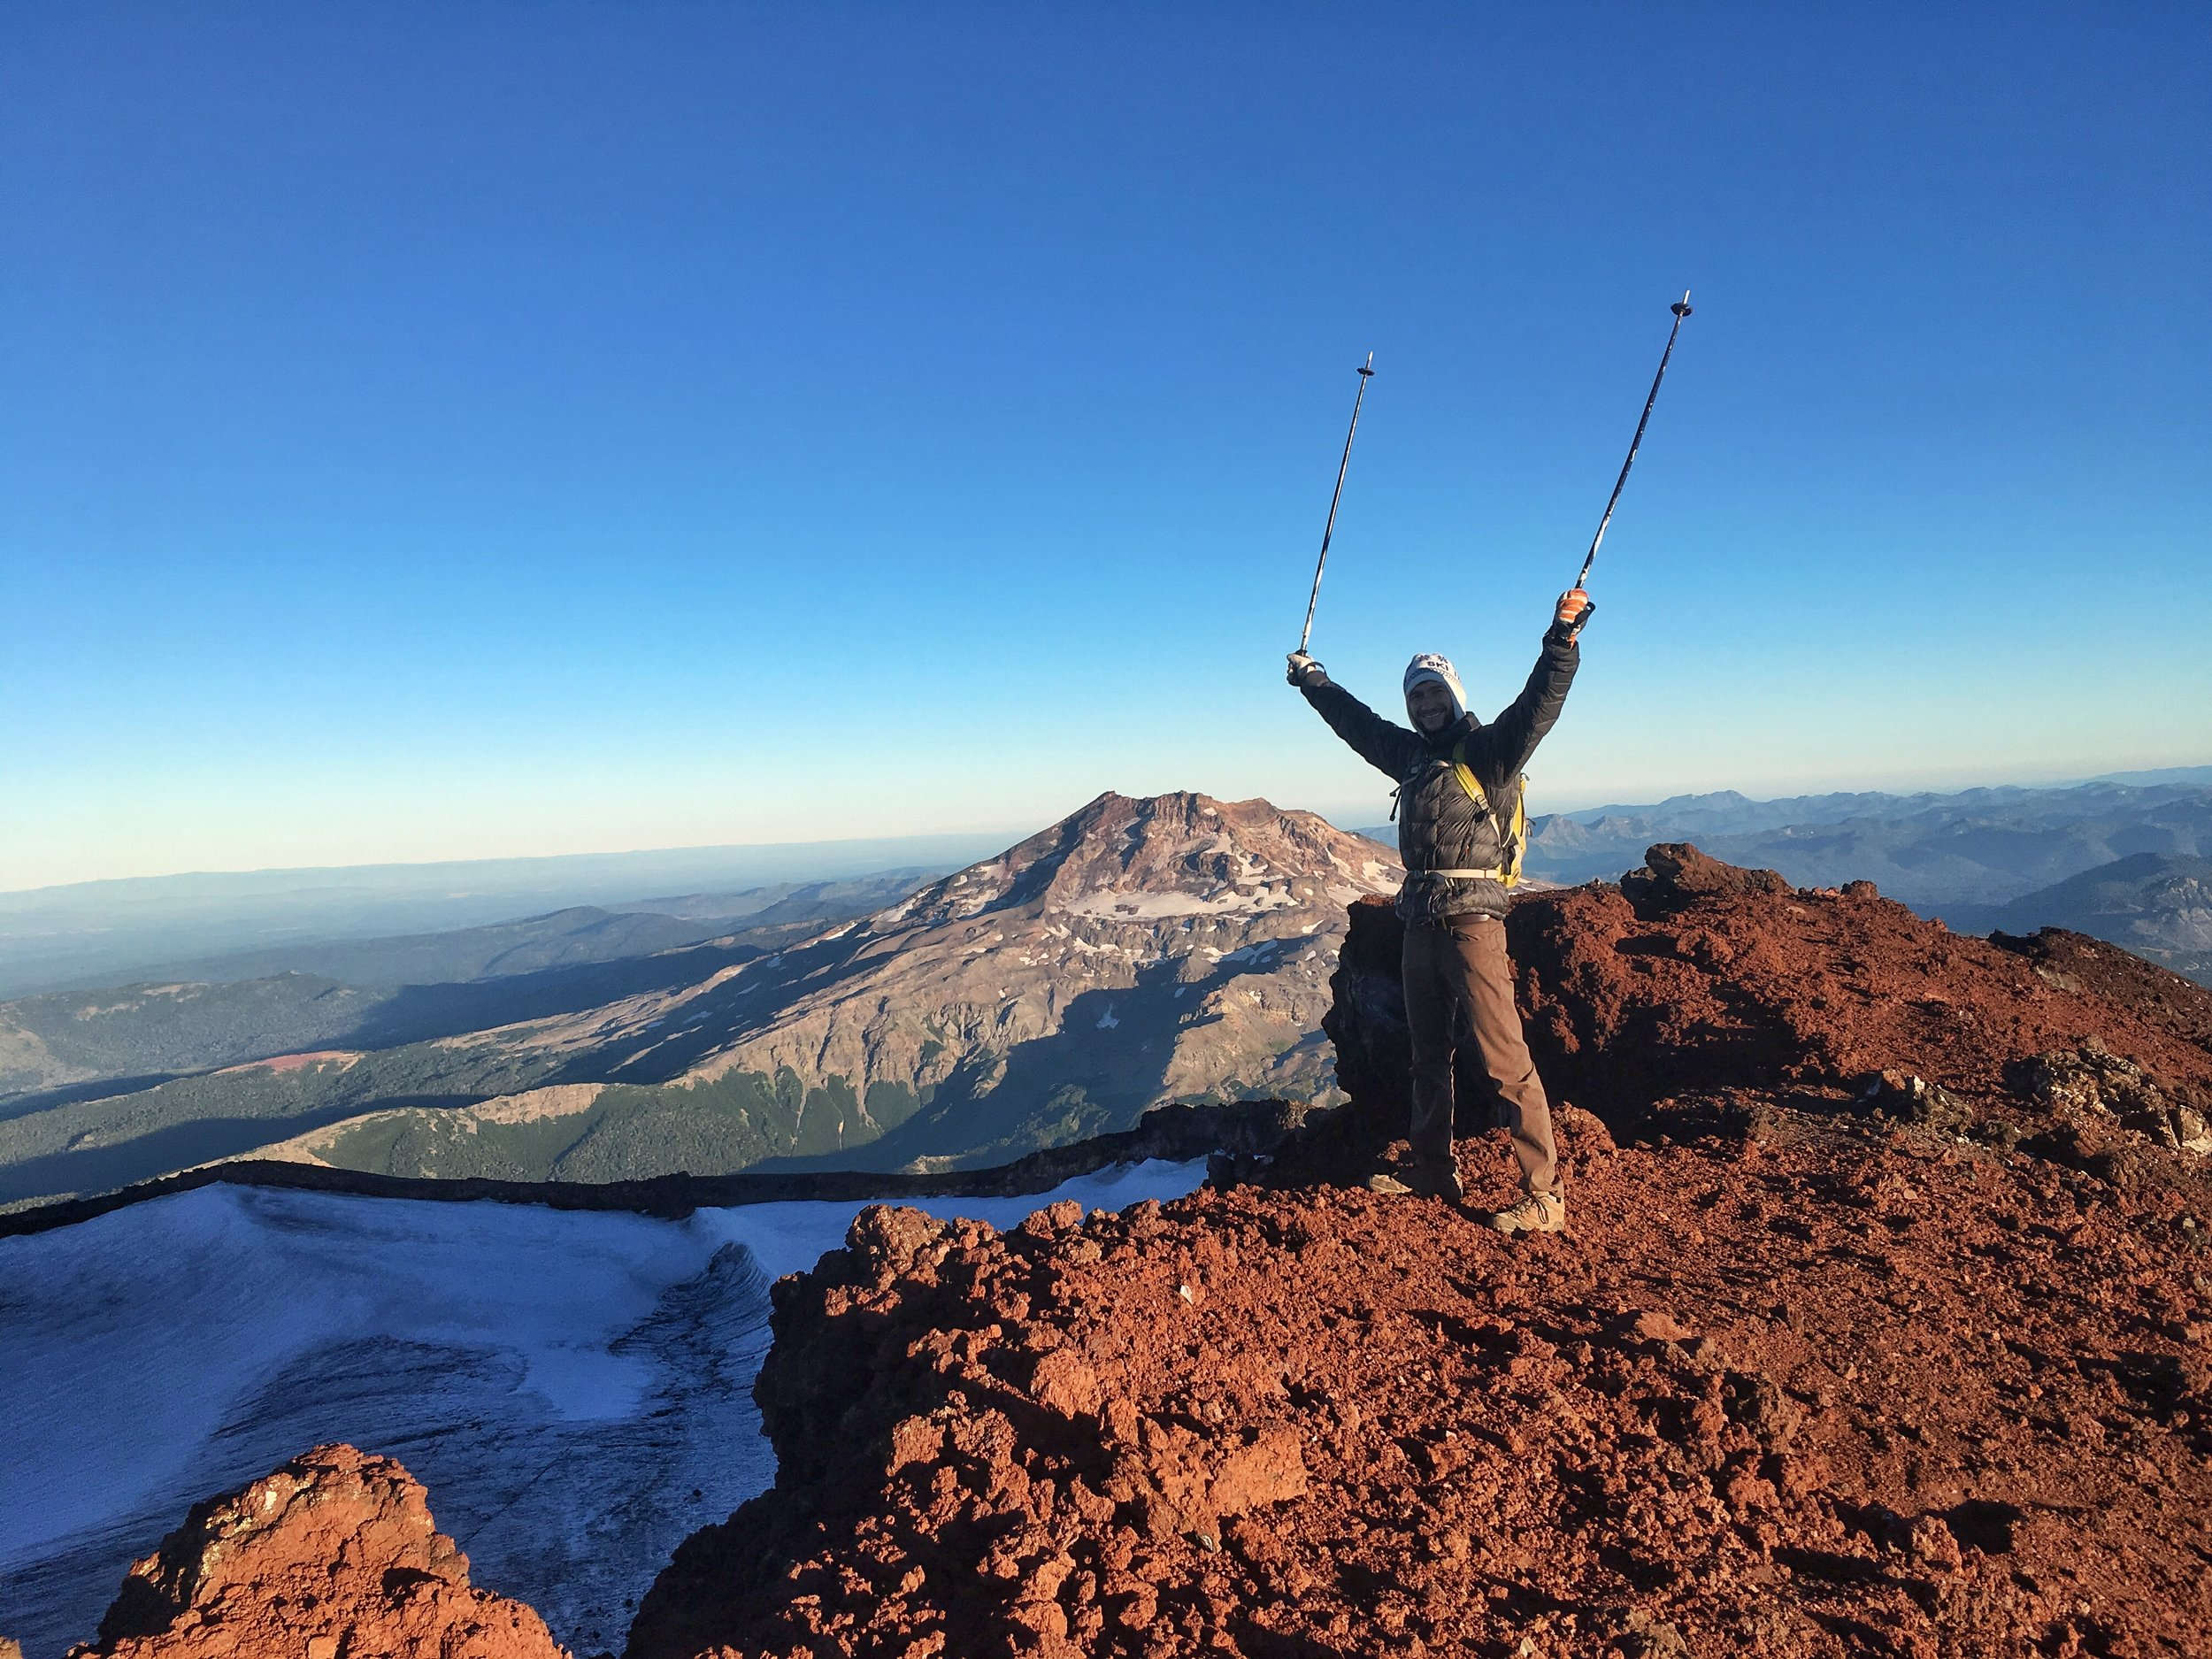 Celebrating a sucesful sunrise summit of Lonquimay Volcano